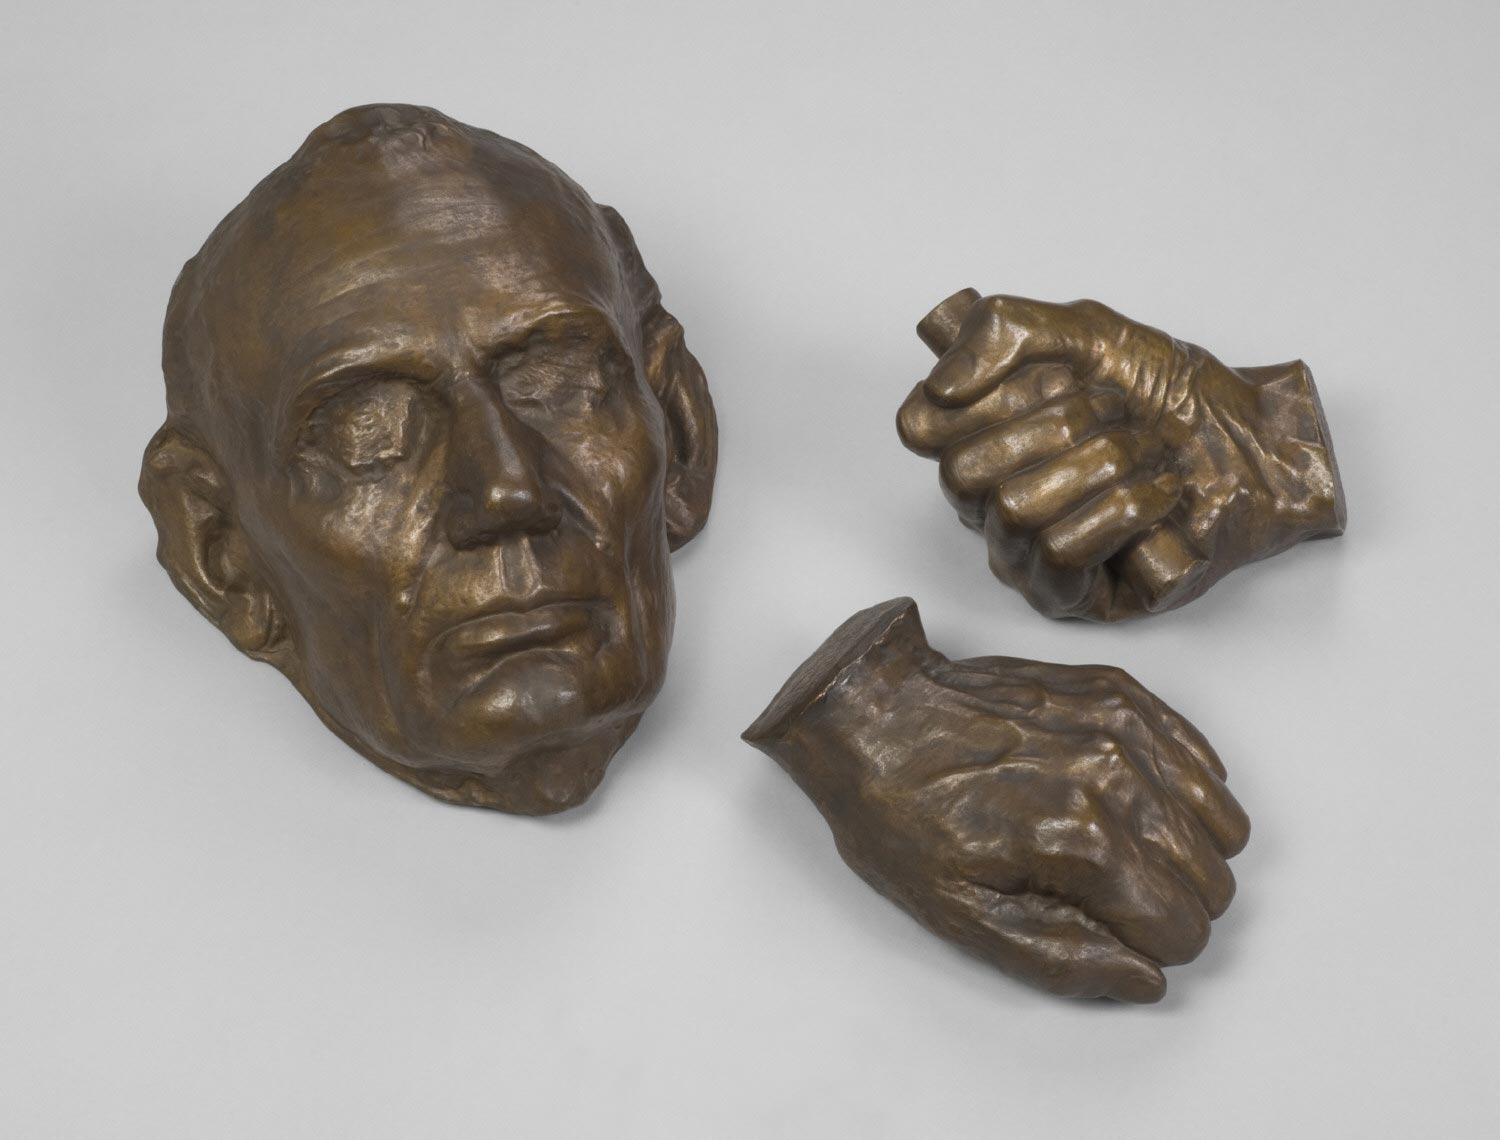 Casts of the Face and Hands of Abraham Lincoln